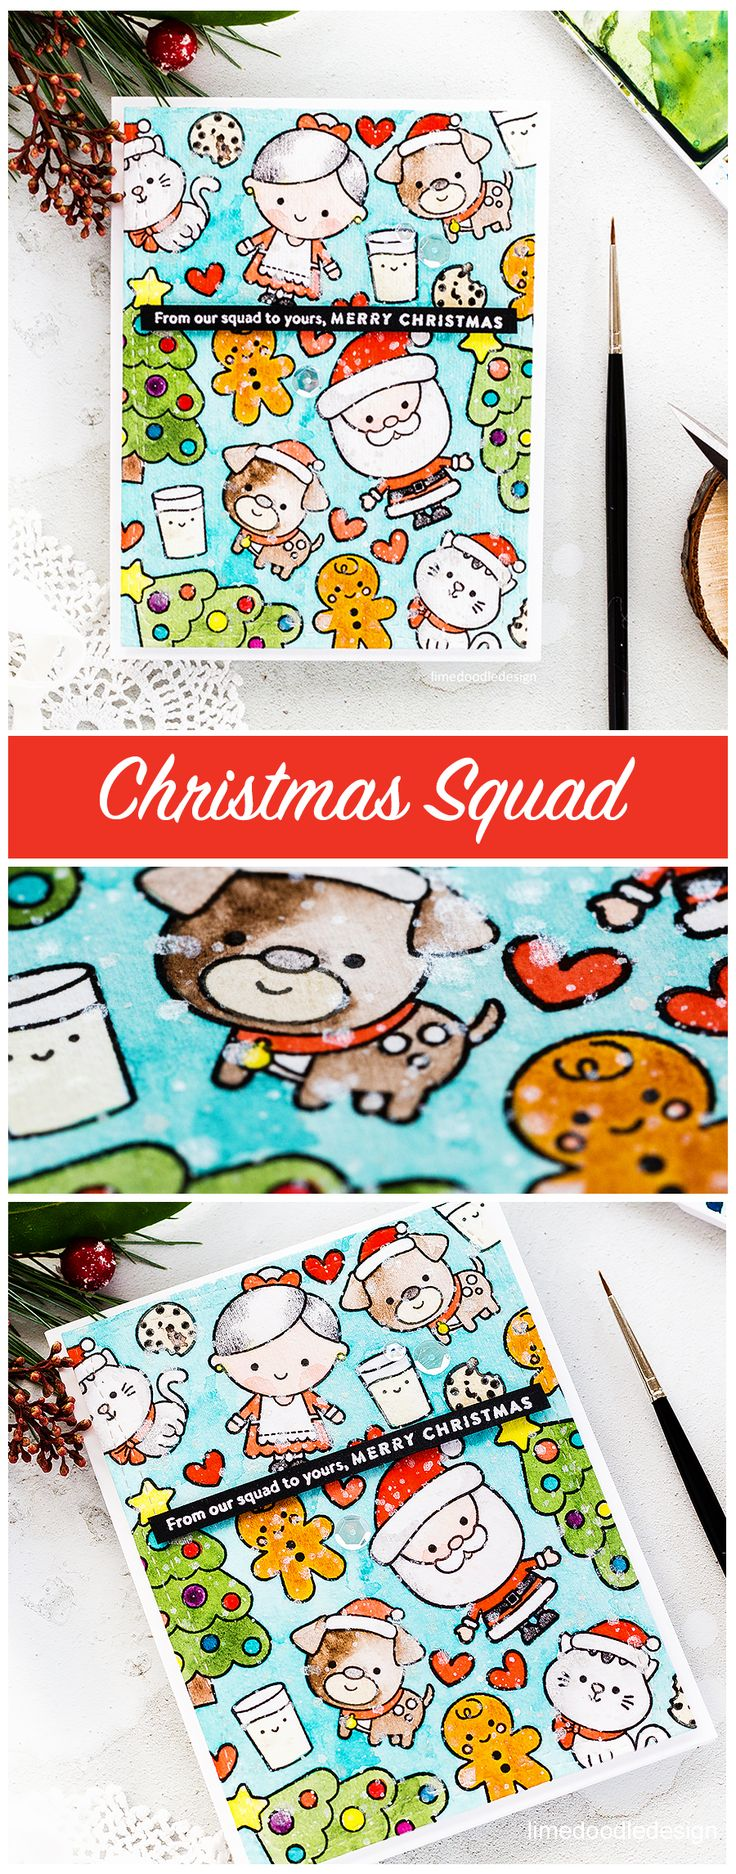 Video - watercoloured cute Christmas card by Debby Hughes using the stamp set from the Simon Says Stamp December Card Kit. Find out more: http://limedoodledesign.com/2017/11/video-christmas-squad-sss-december-2017-card-kit/